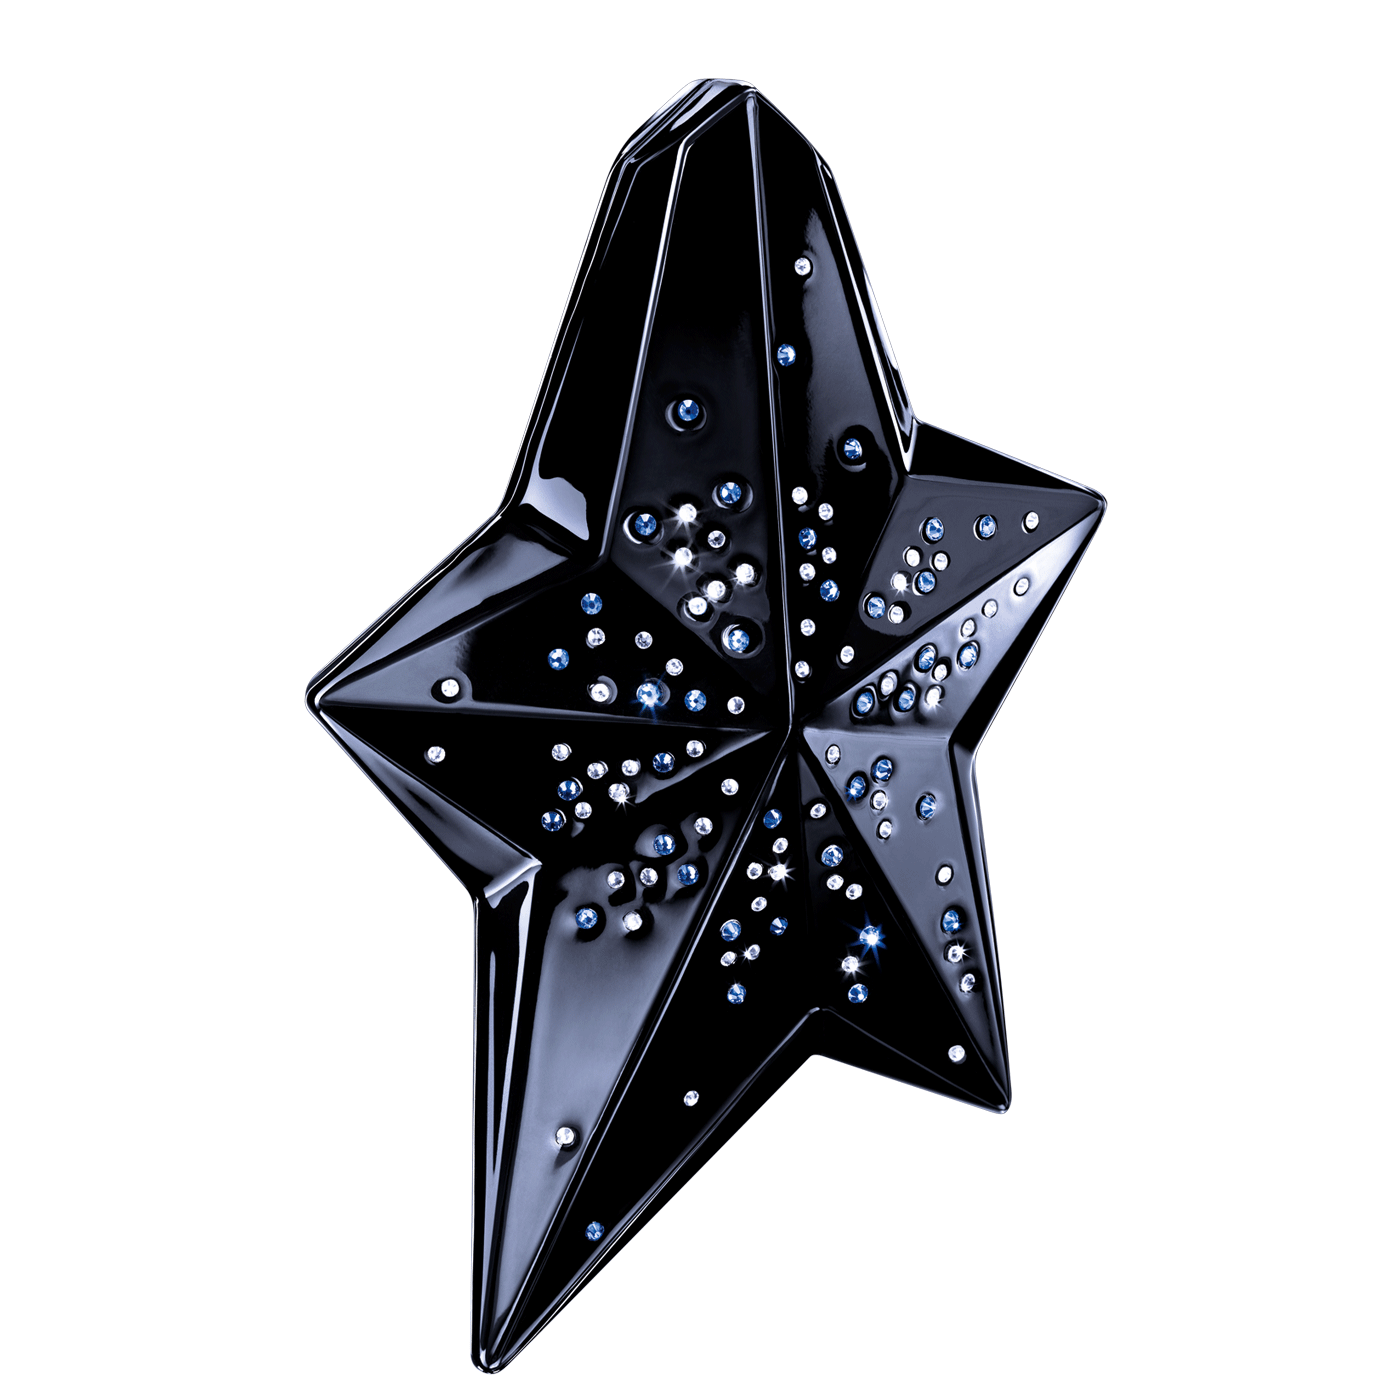 Angel Black Brilliant Star - A rousing round of applause for this dramatic star, nestled in a black case encrusted with shimmering Swarovski crystals, to protect your precious .8 fl. oz Eau de Parfum Refillable Shooting Star Spray. A celebration of spectacular style and dazzling drama!